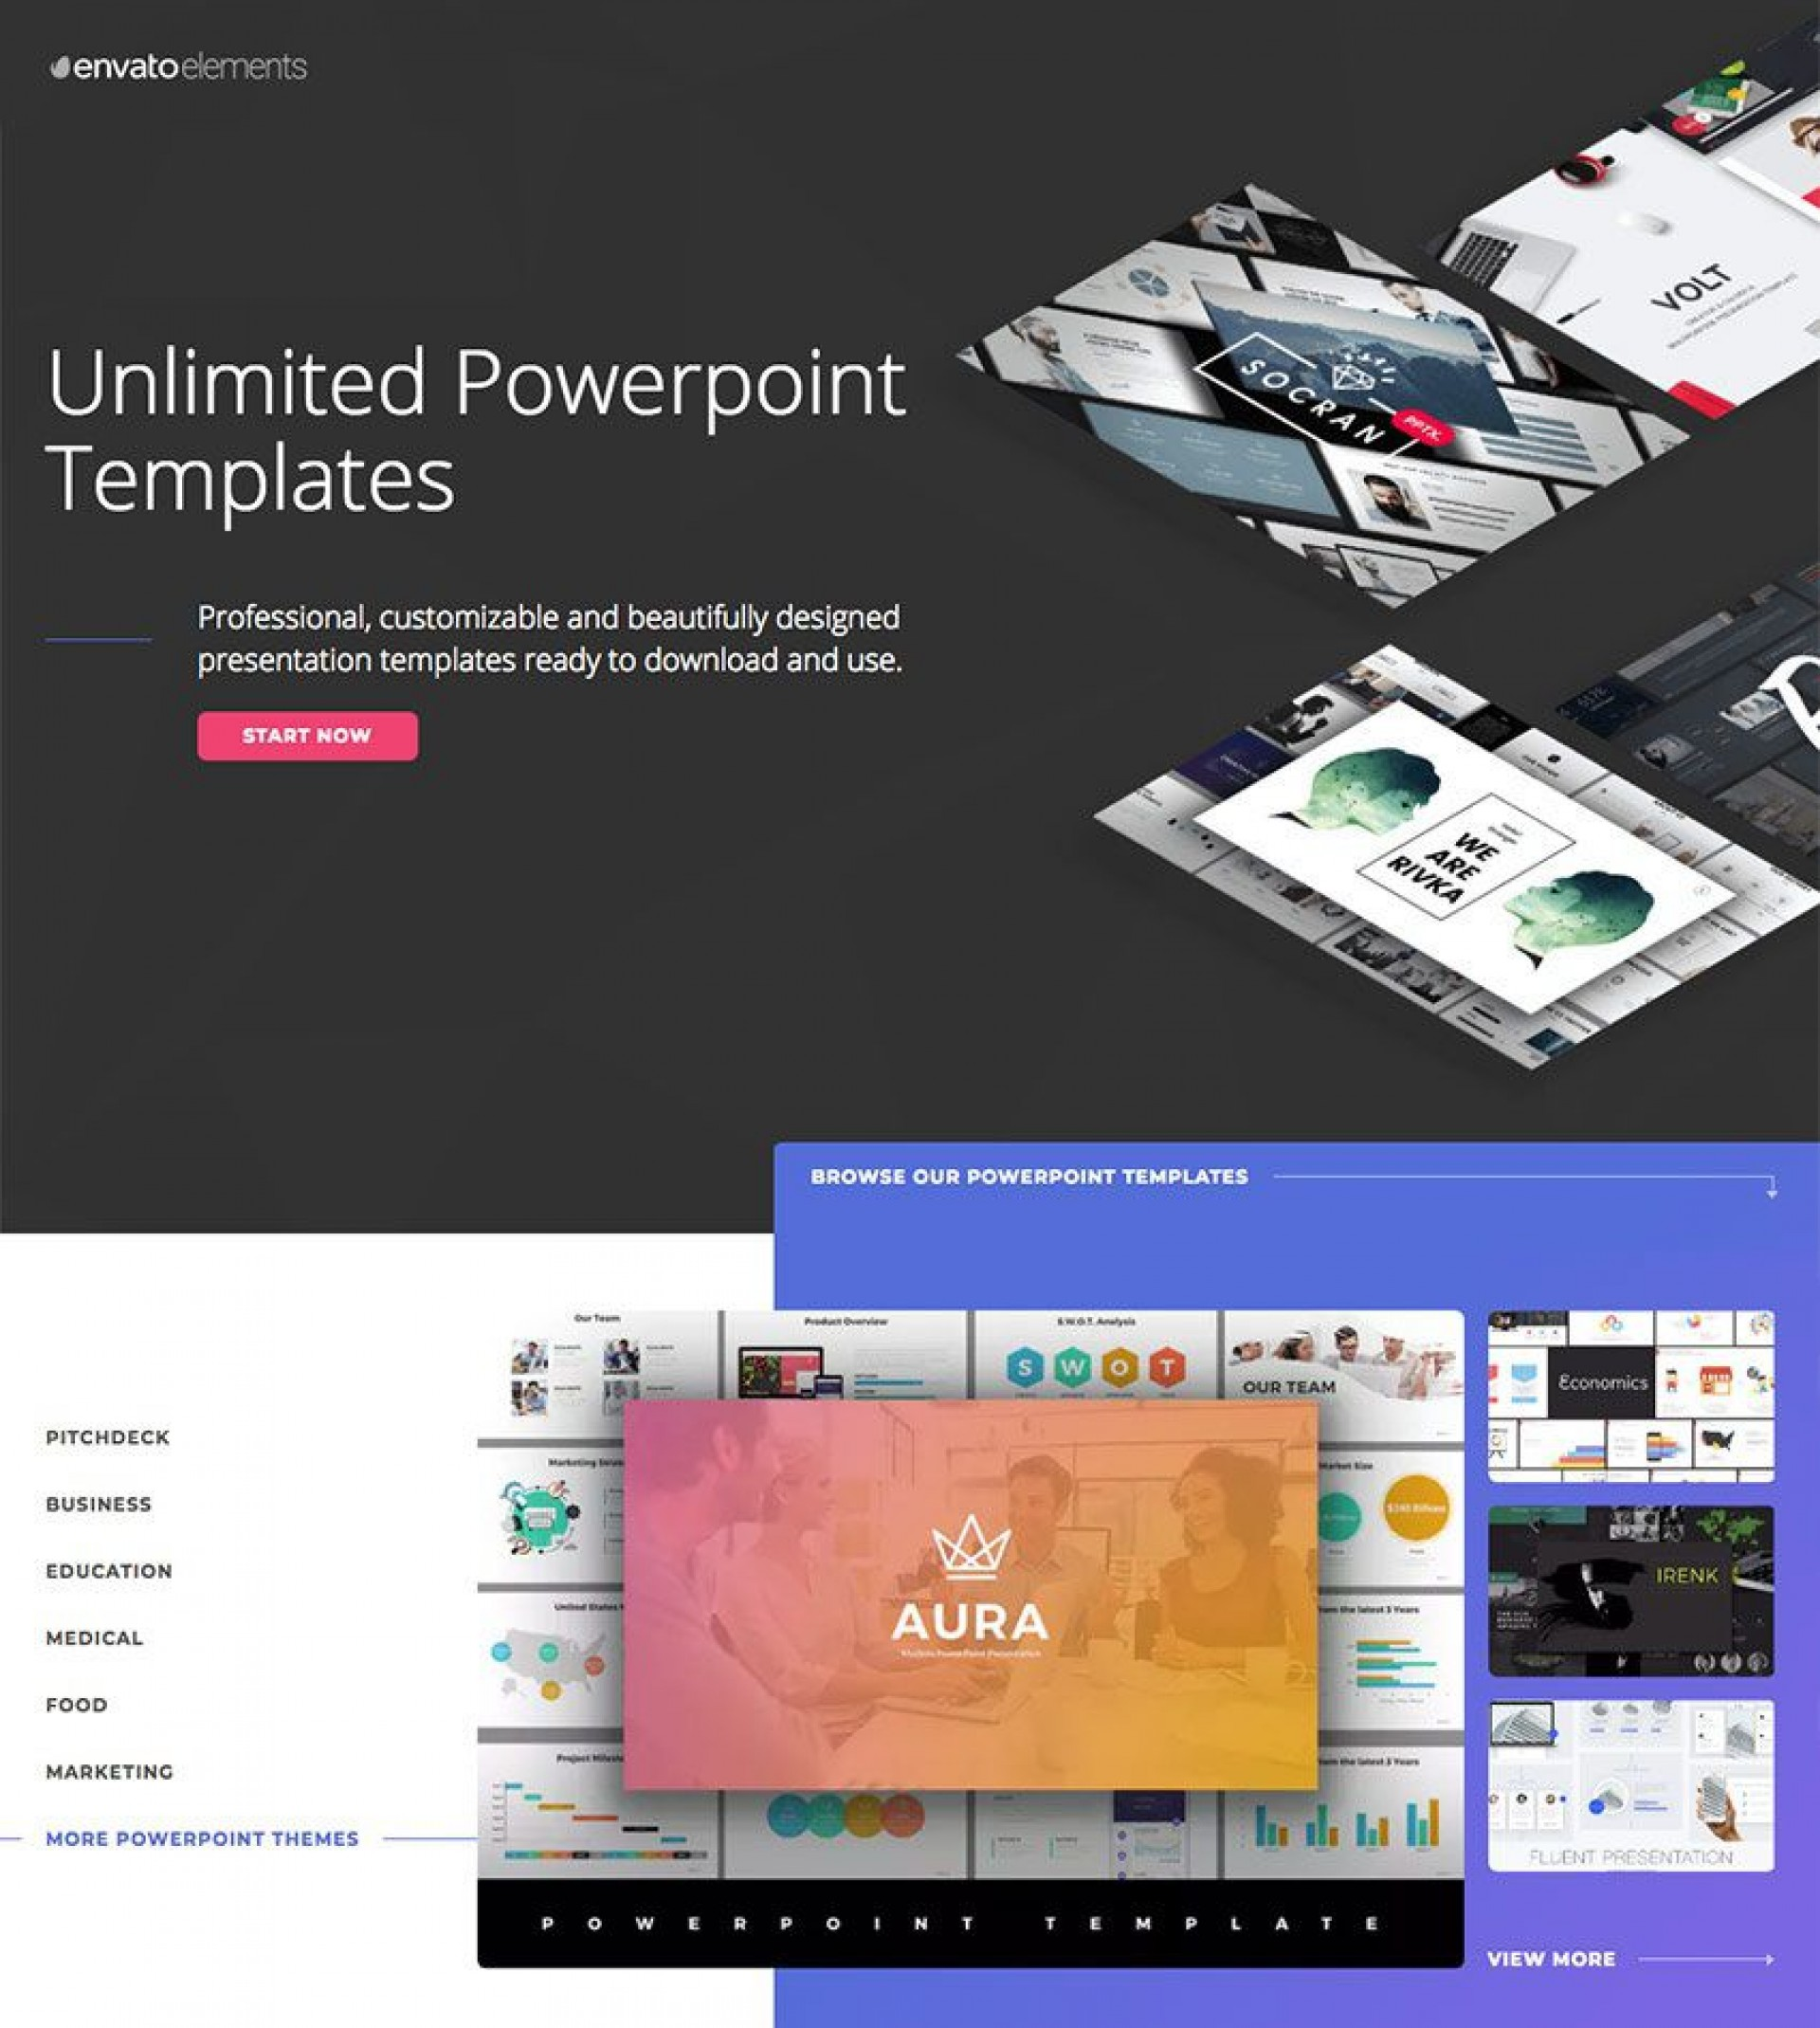 008 Remarkable 3d Animated Powerpoint Template Free Download 2016 Example 1920